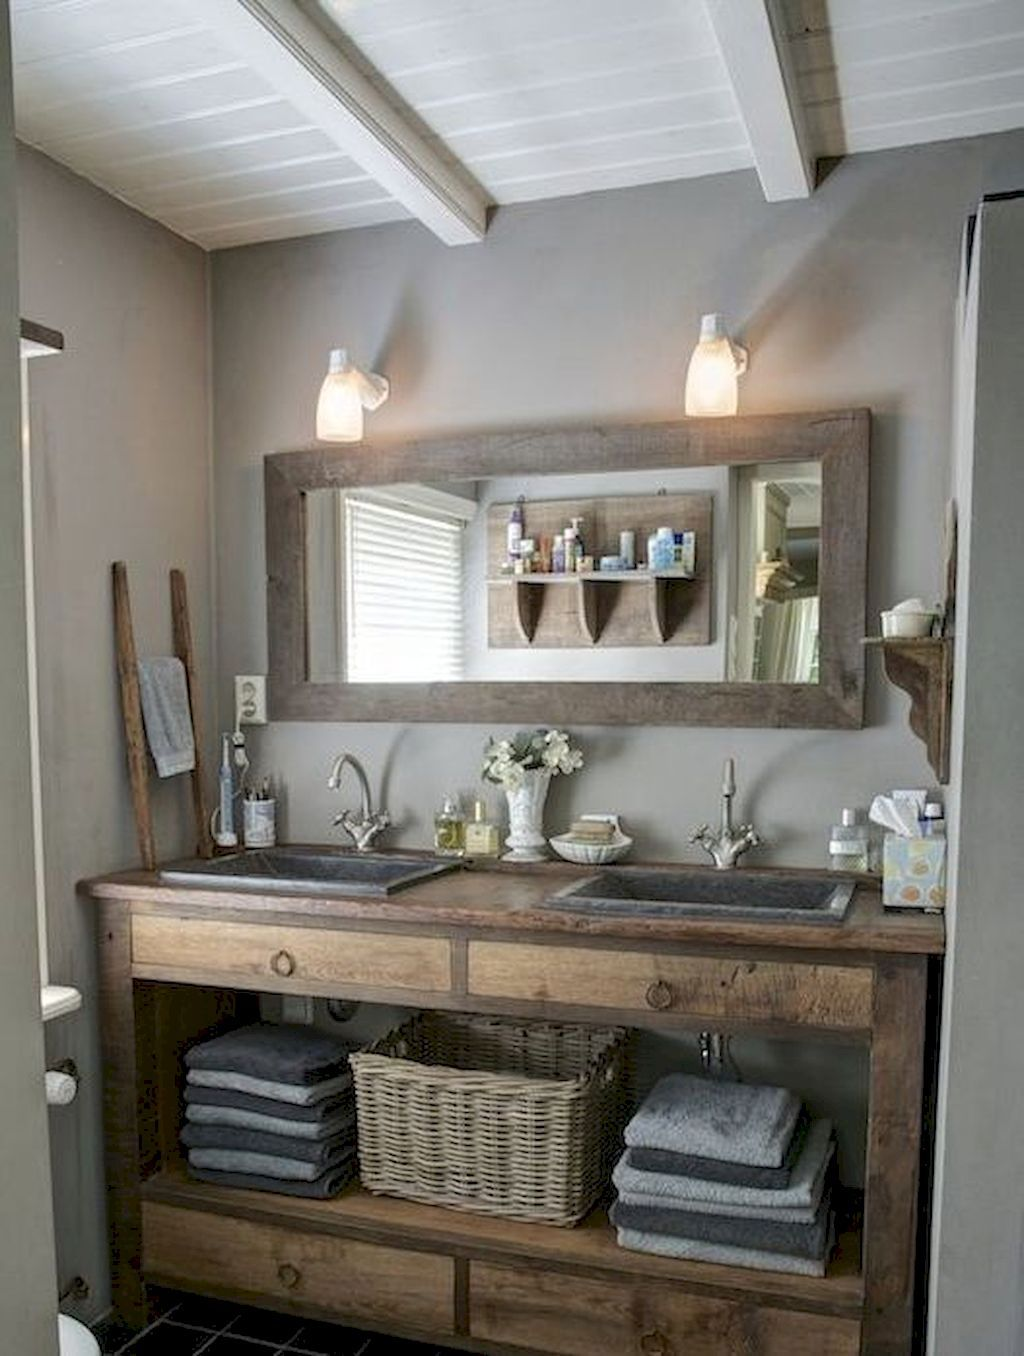 125 awesome farmhouse bathroom vanity remodel ideas - Bathroom vanity with farmhouse sink ...